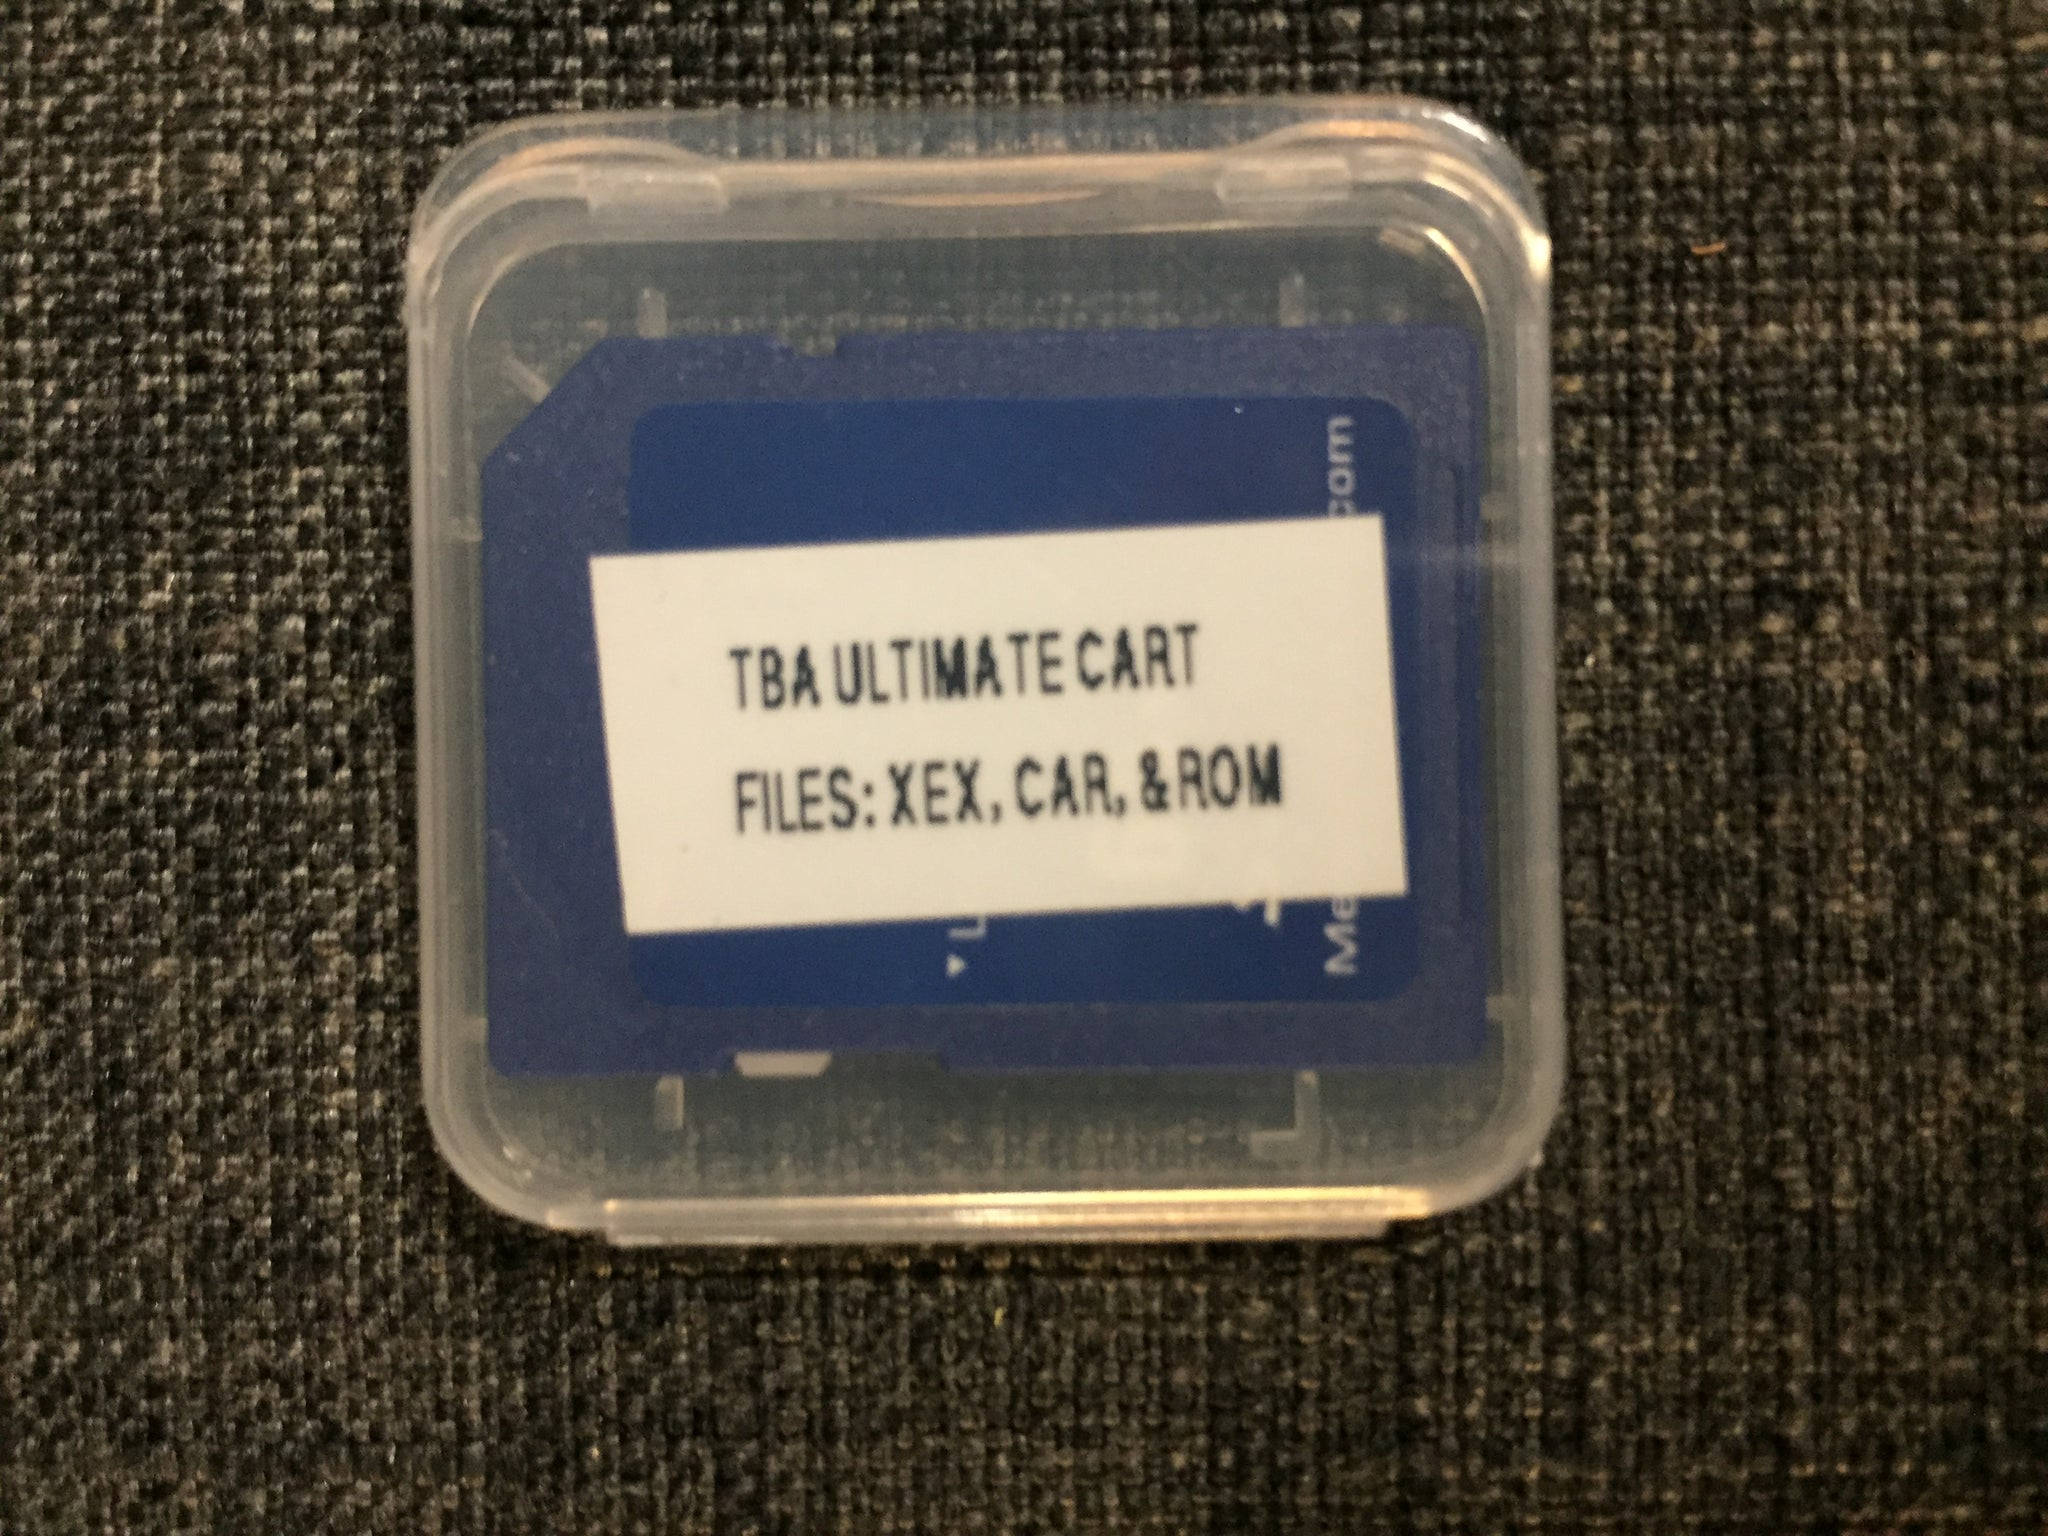 TBA 64MB SD Card for the Ultimate A8 Cartridge